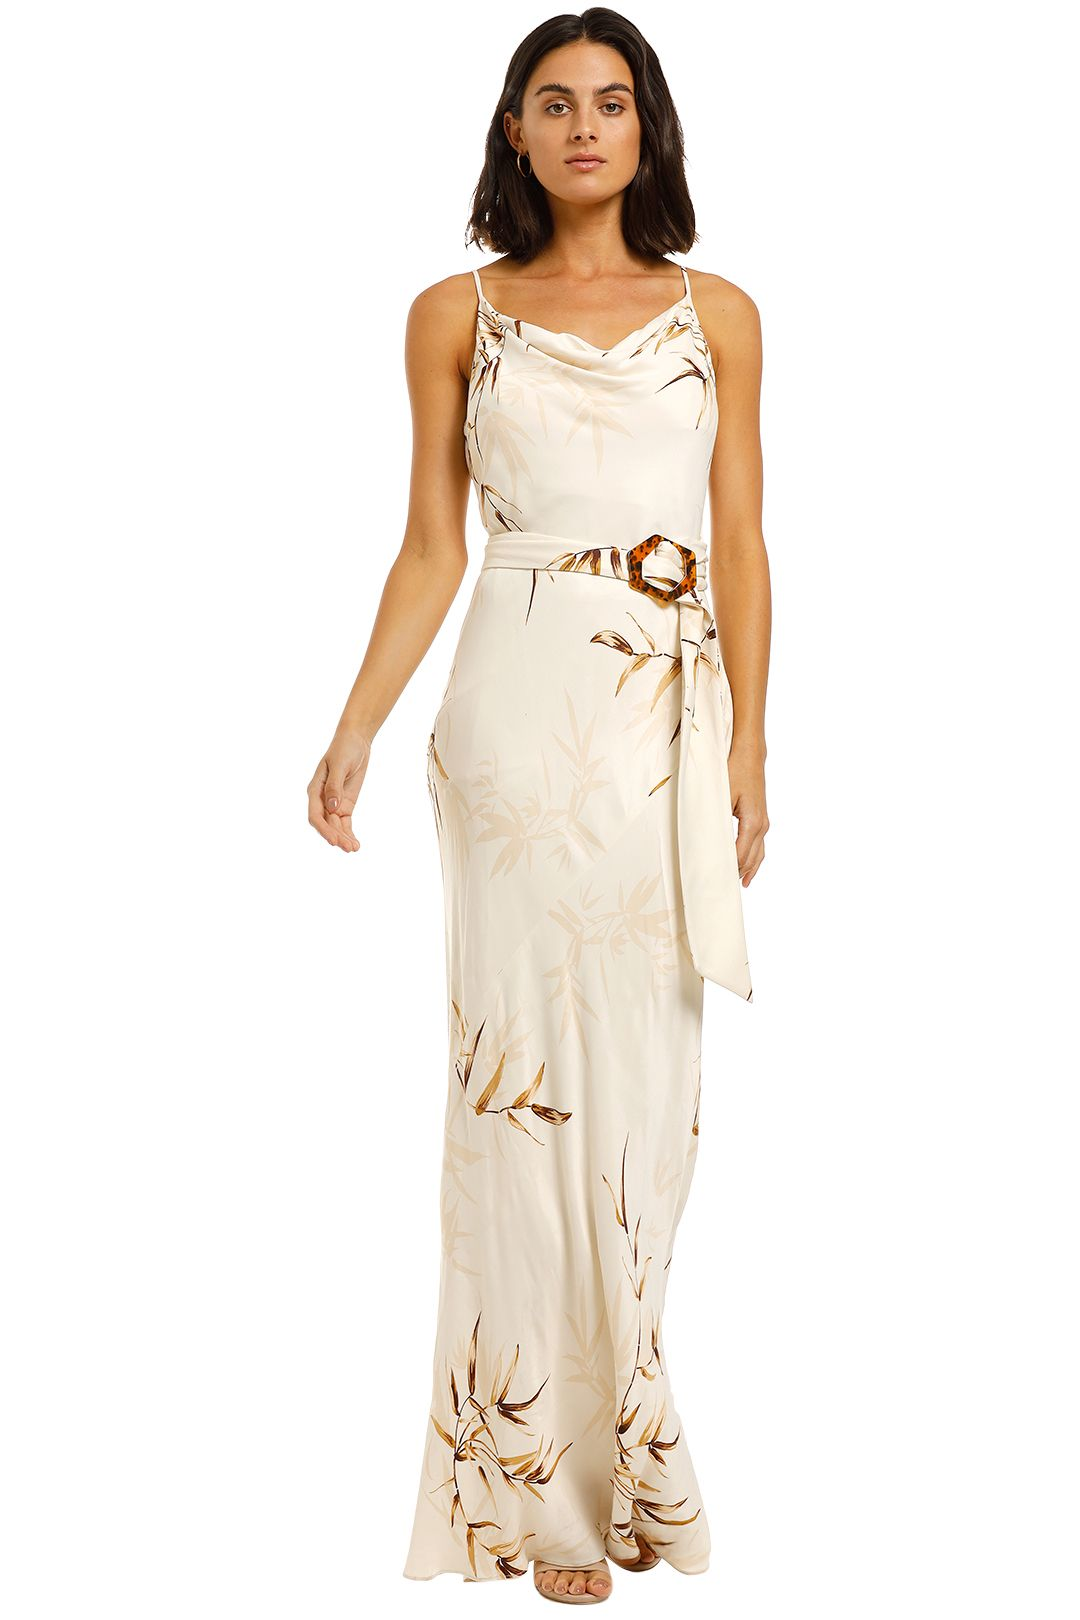 Shona-Joy-Horizon-Bias-Cowl-Maxi-Dress-Cream-Front